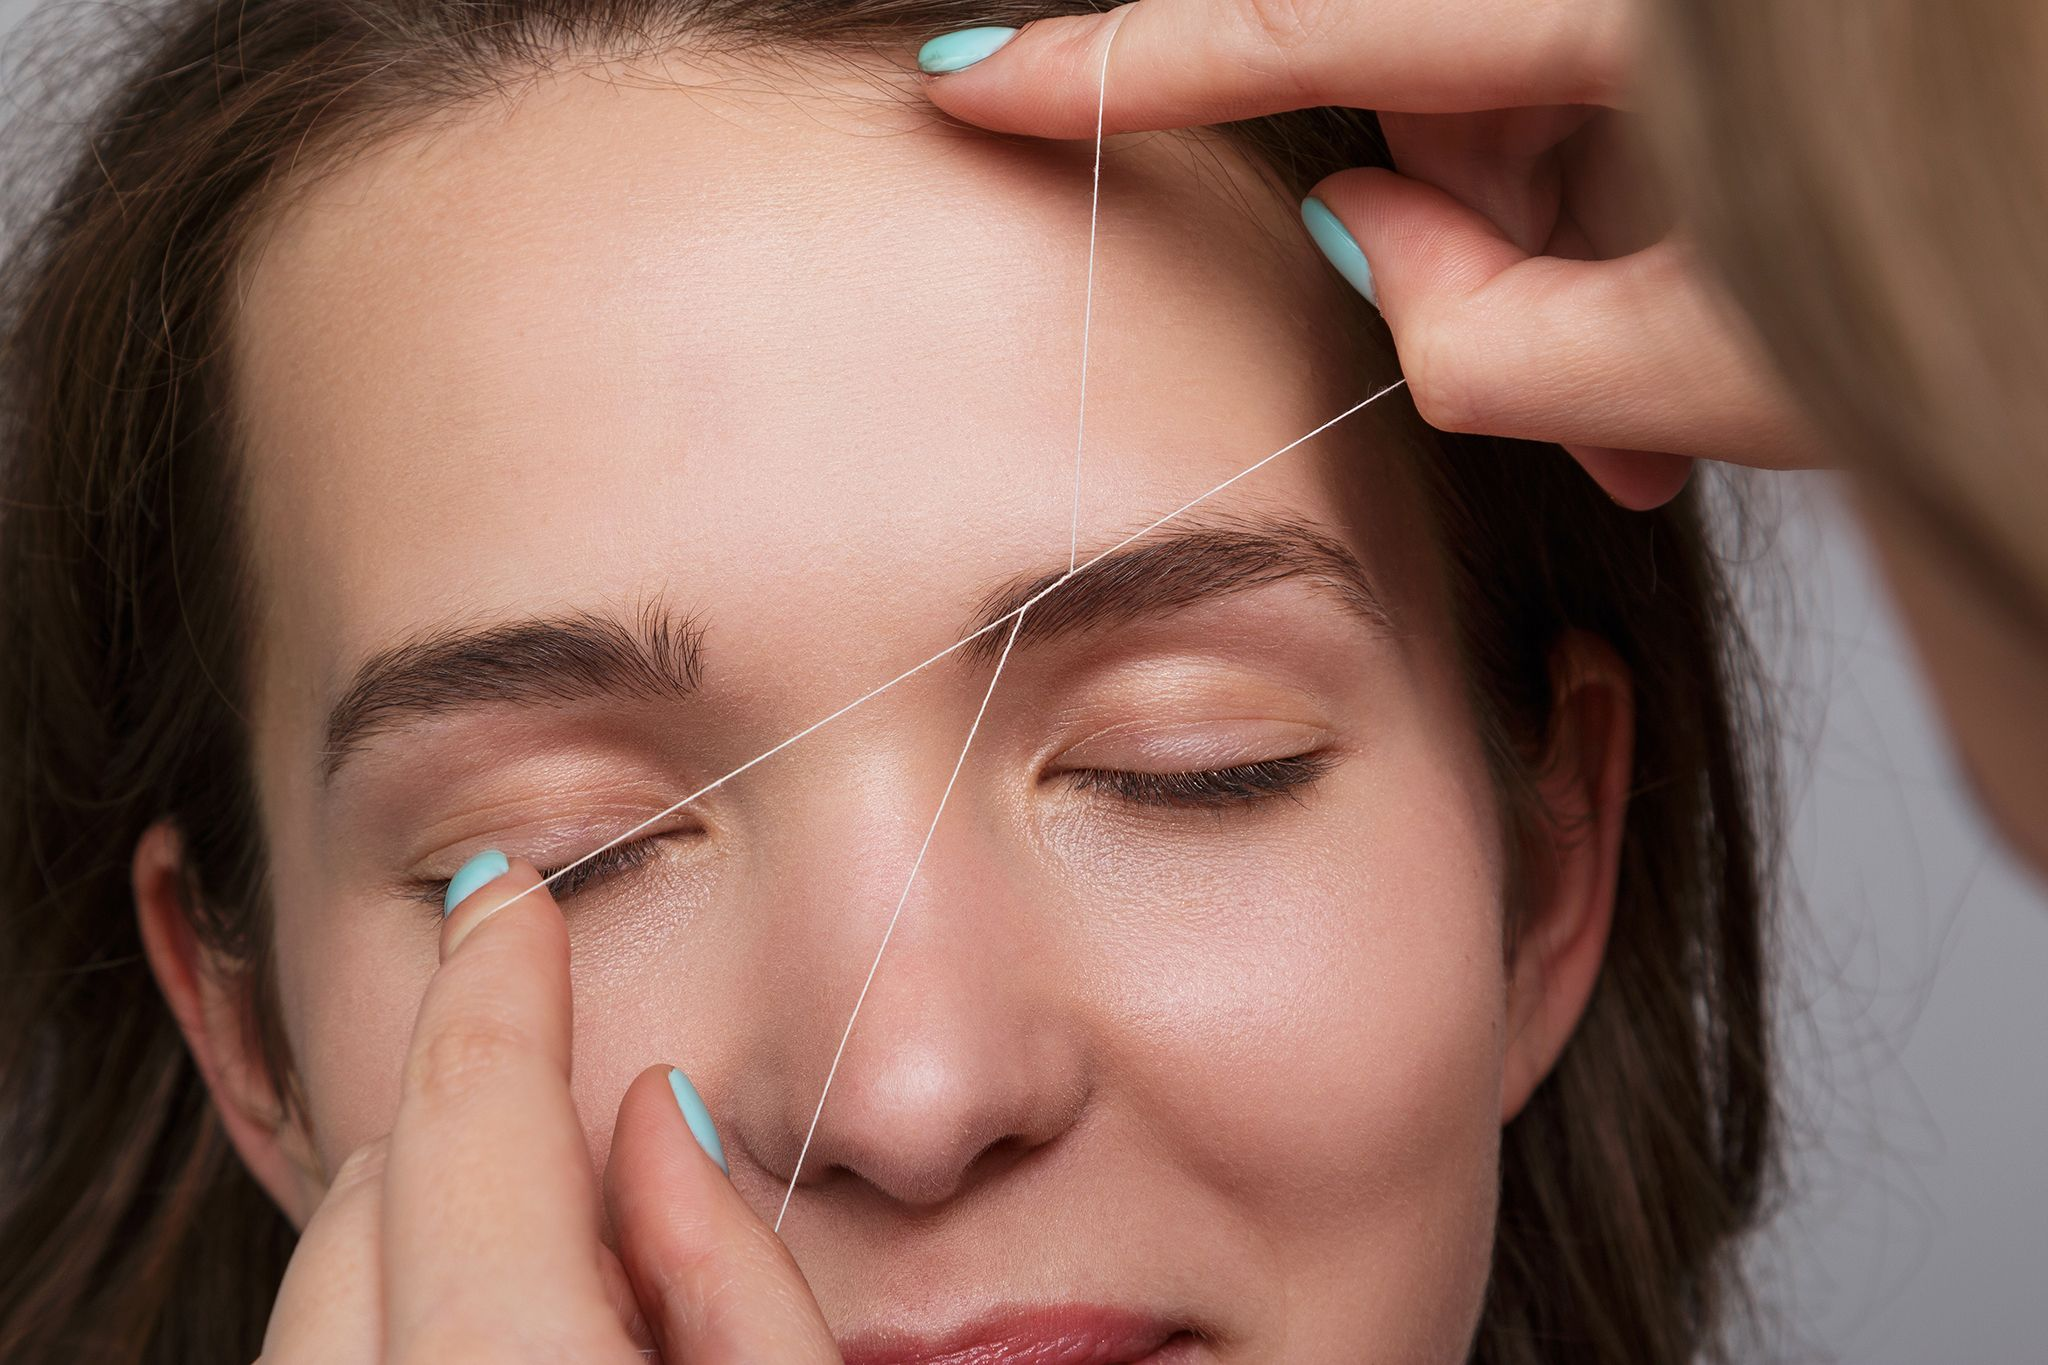 For Eyebrow Waxing In Nyc Head To These Brow Bars And Spas Waxing